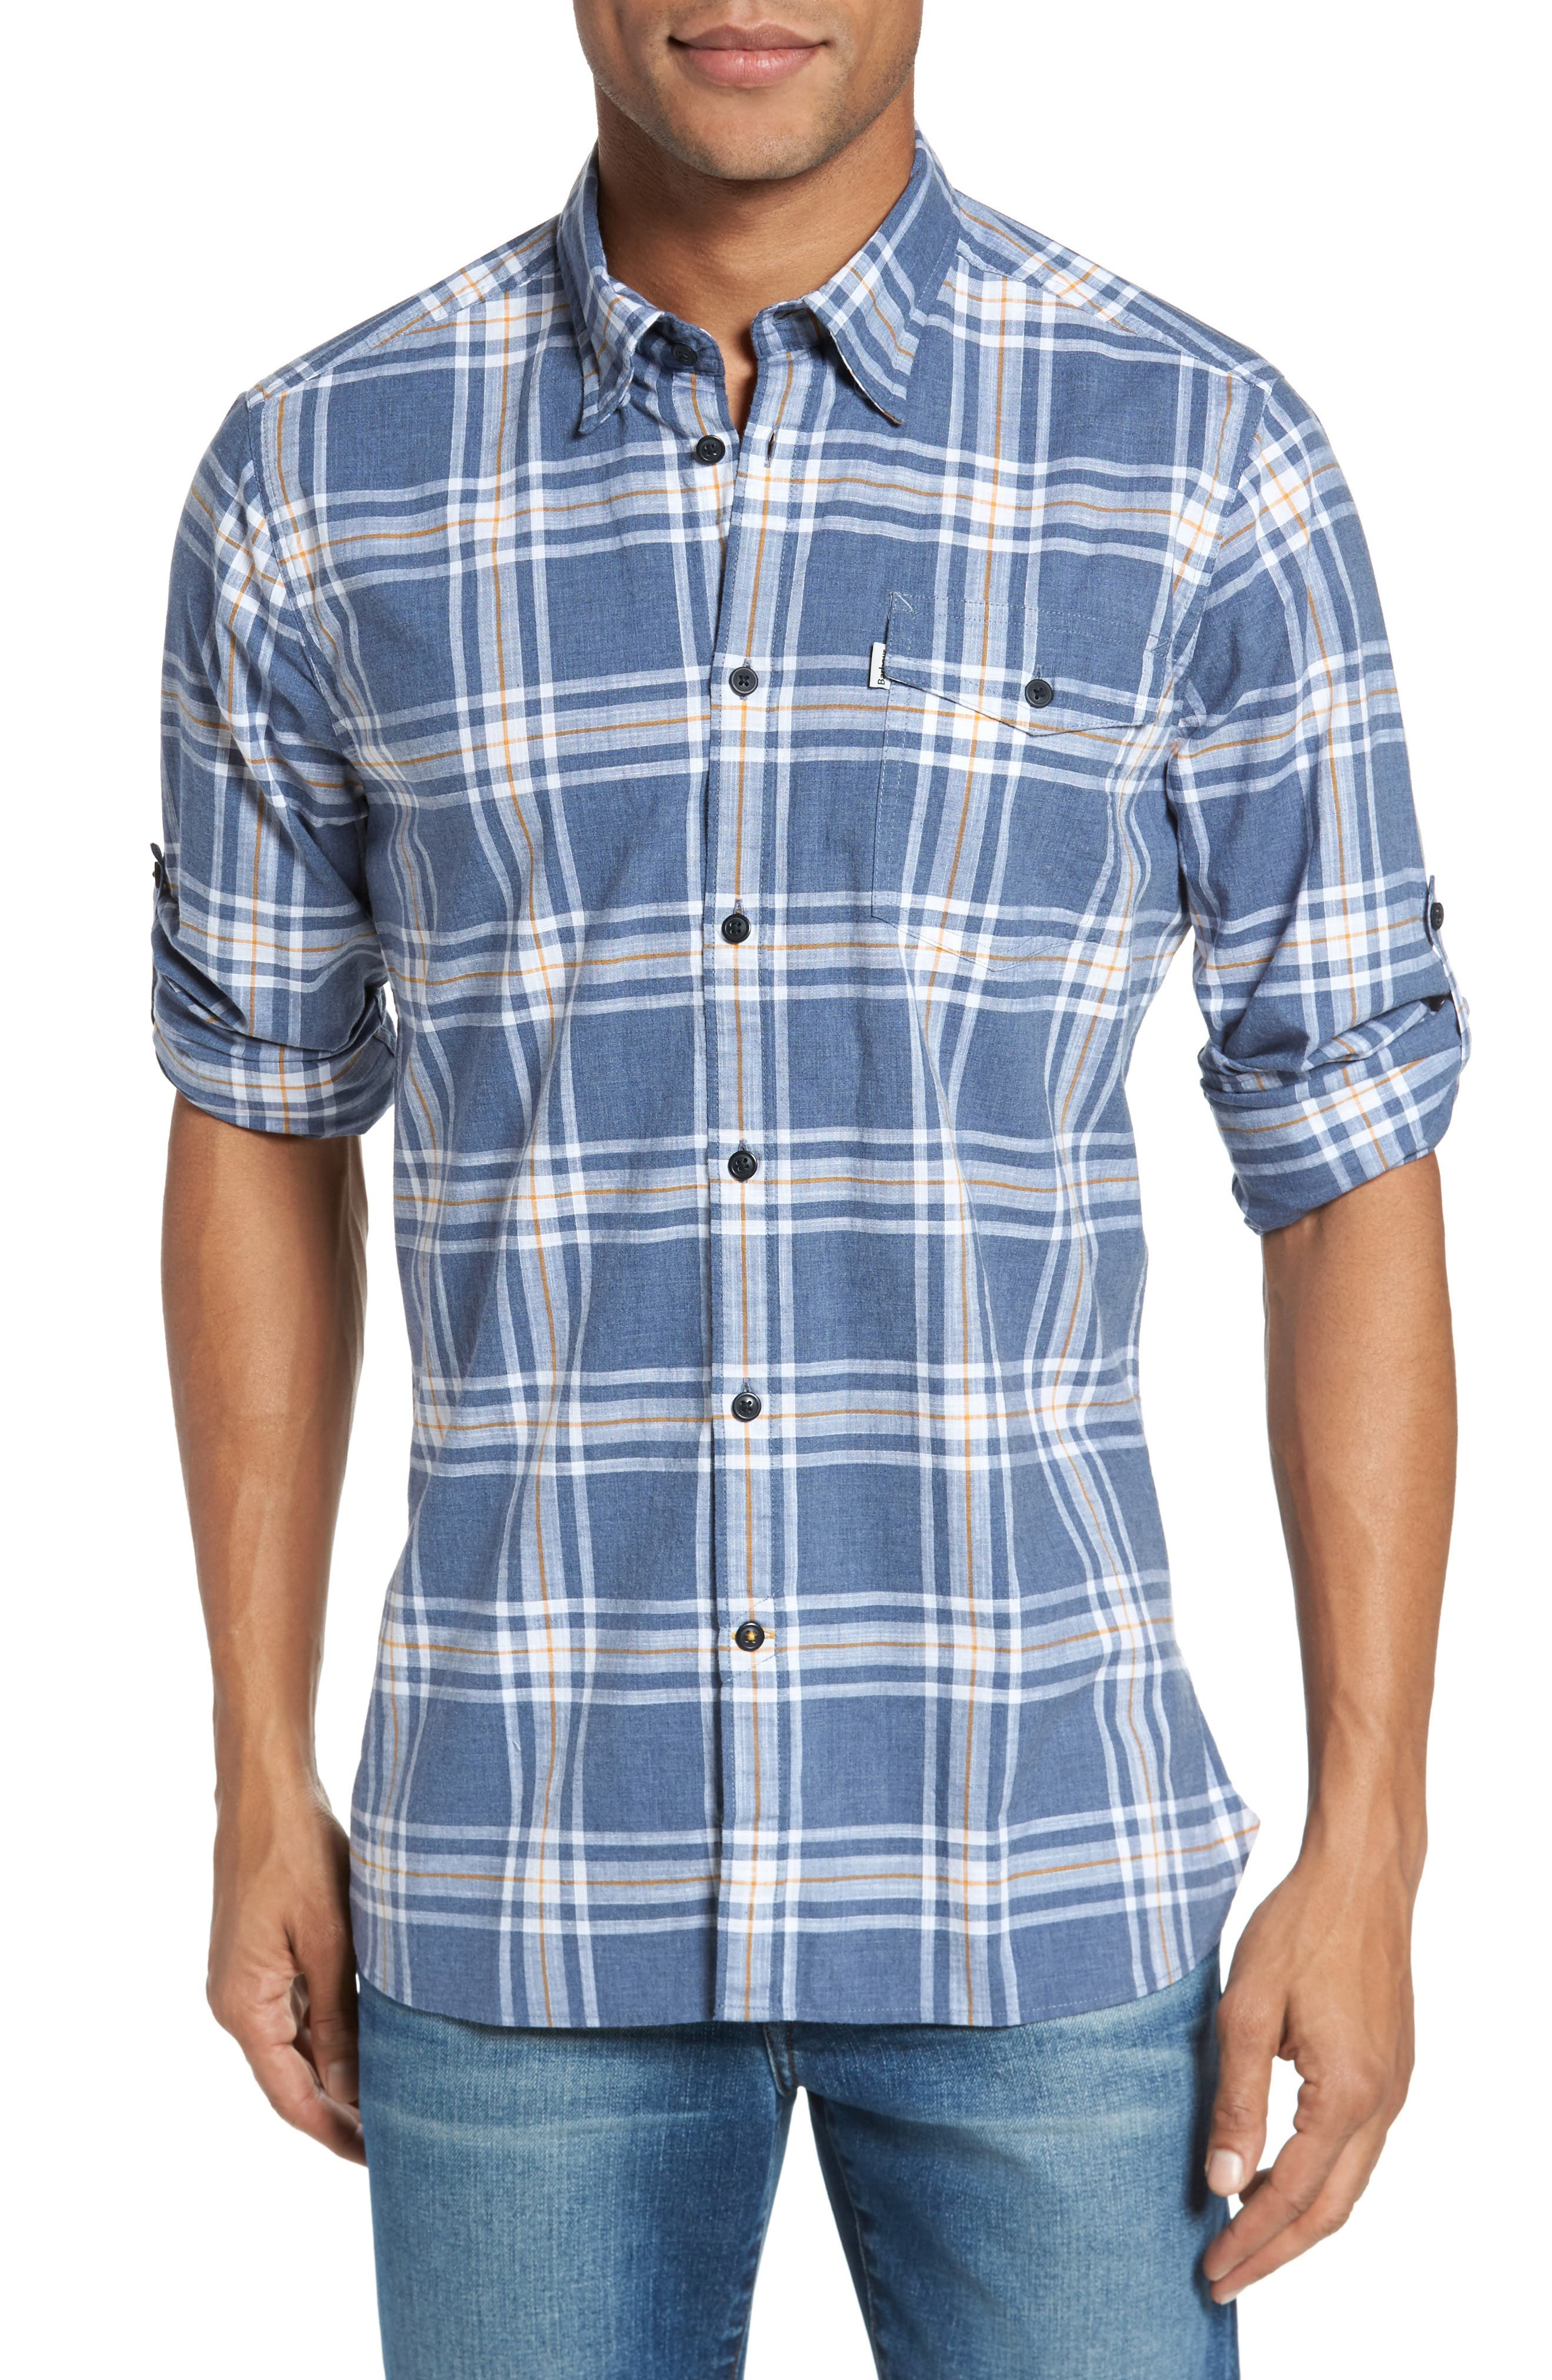 Elver Tailored Fit Plaid Sport Shirt,                         Main,                         color, Navy